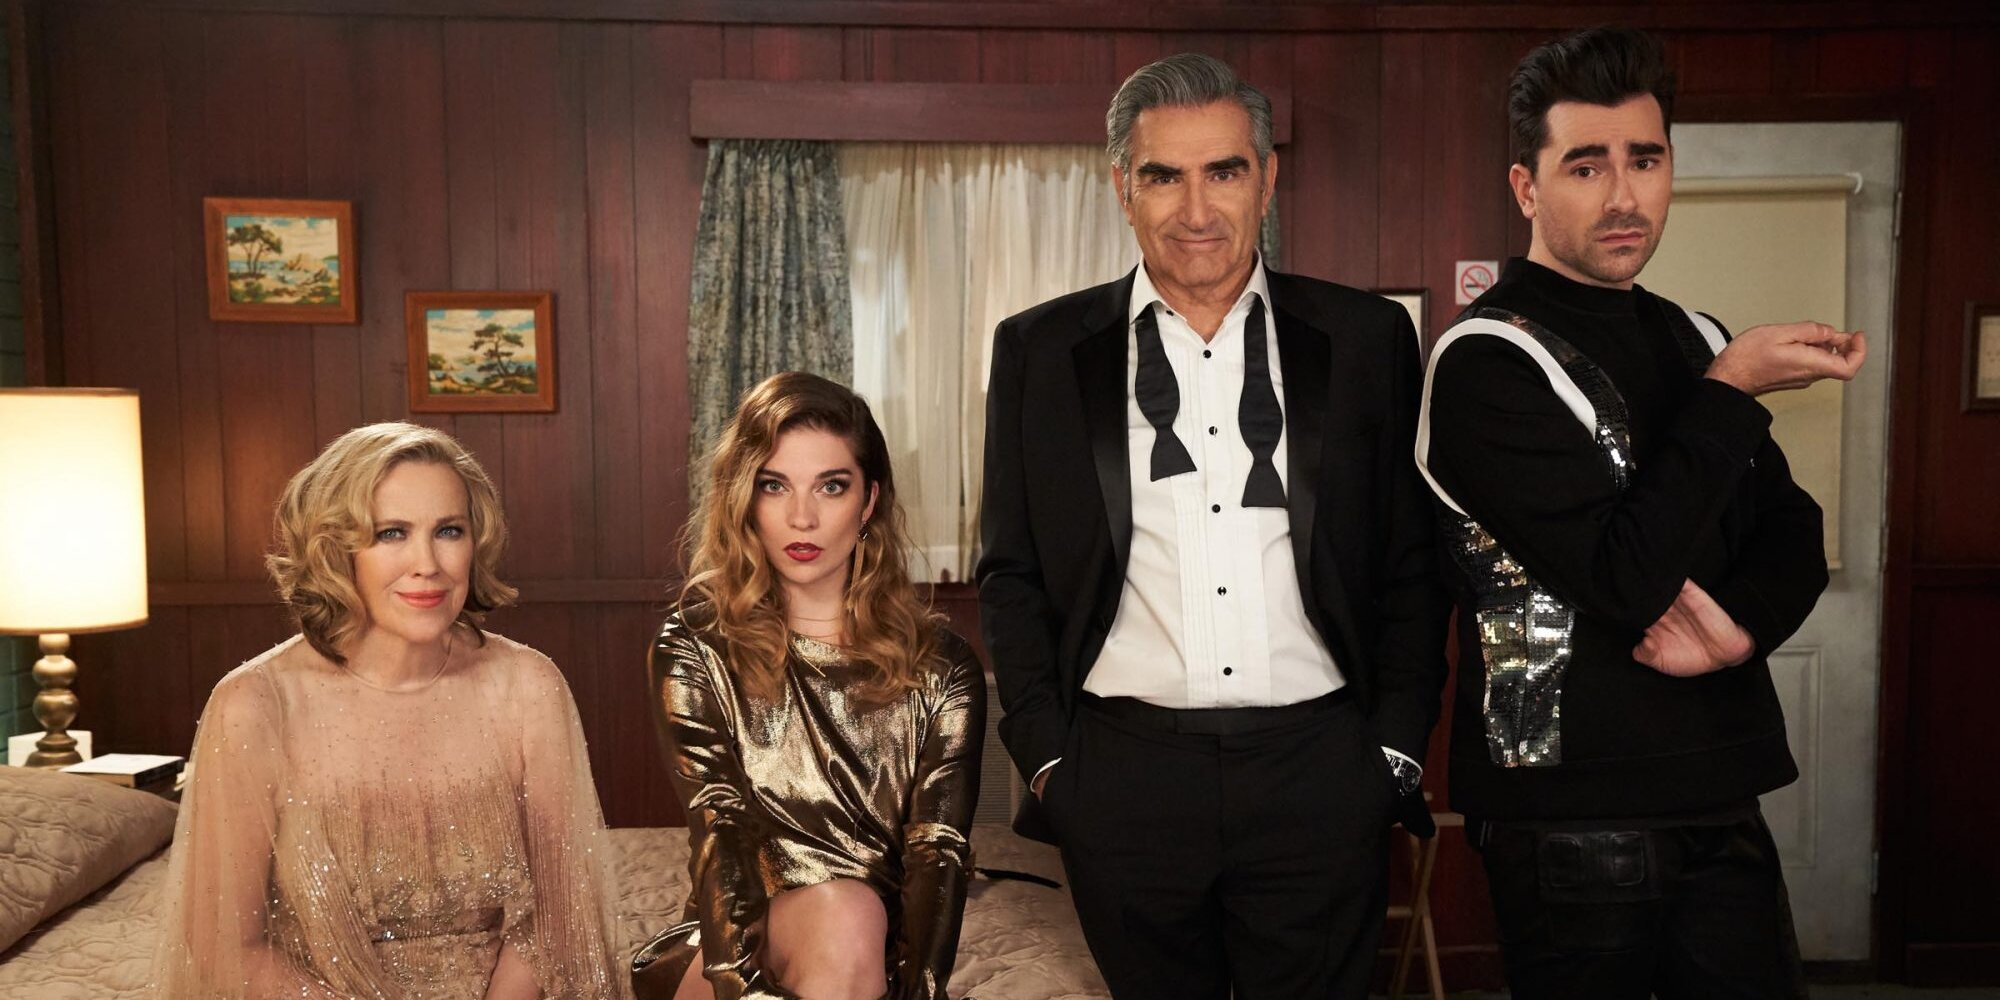 Exclusive: Go inside the official 'Schitt's Creek' tie-in book from Dan and Eugene Levy